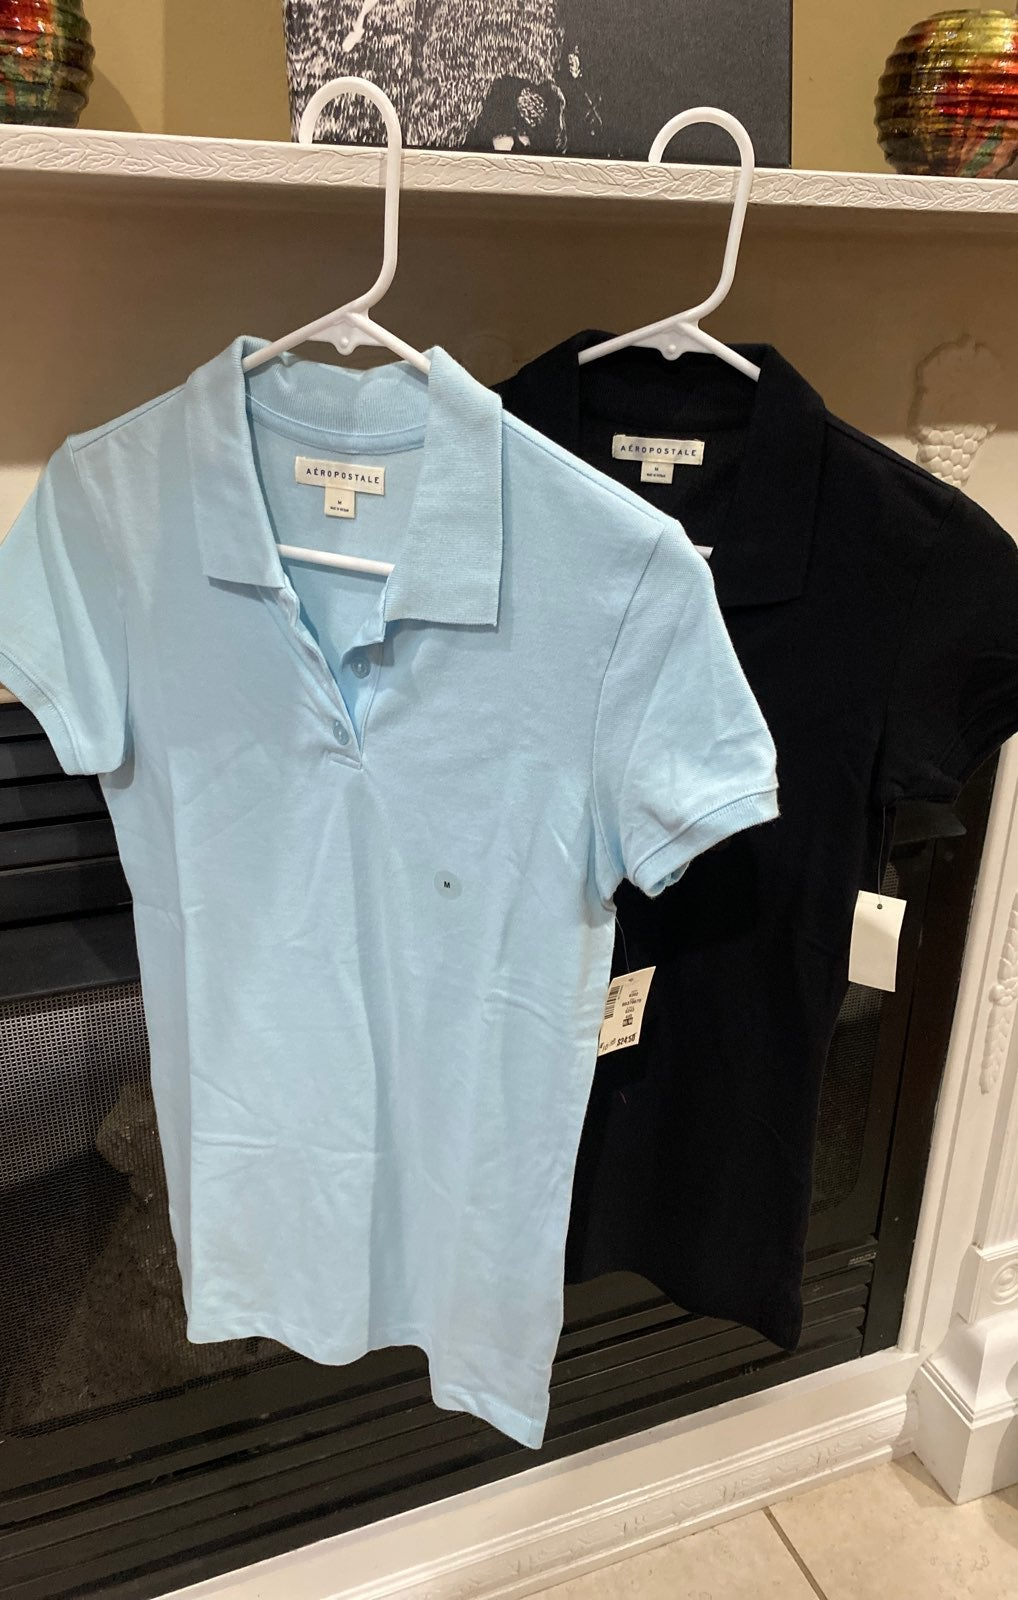 Aeropostale 2 polo shirts Medium jr size